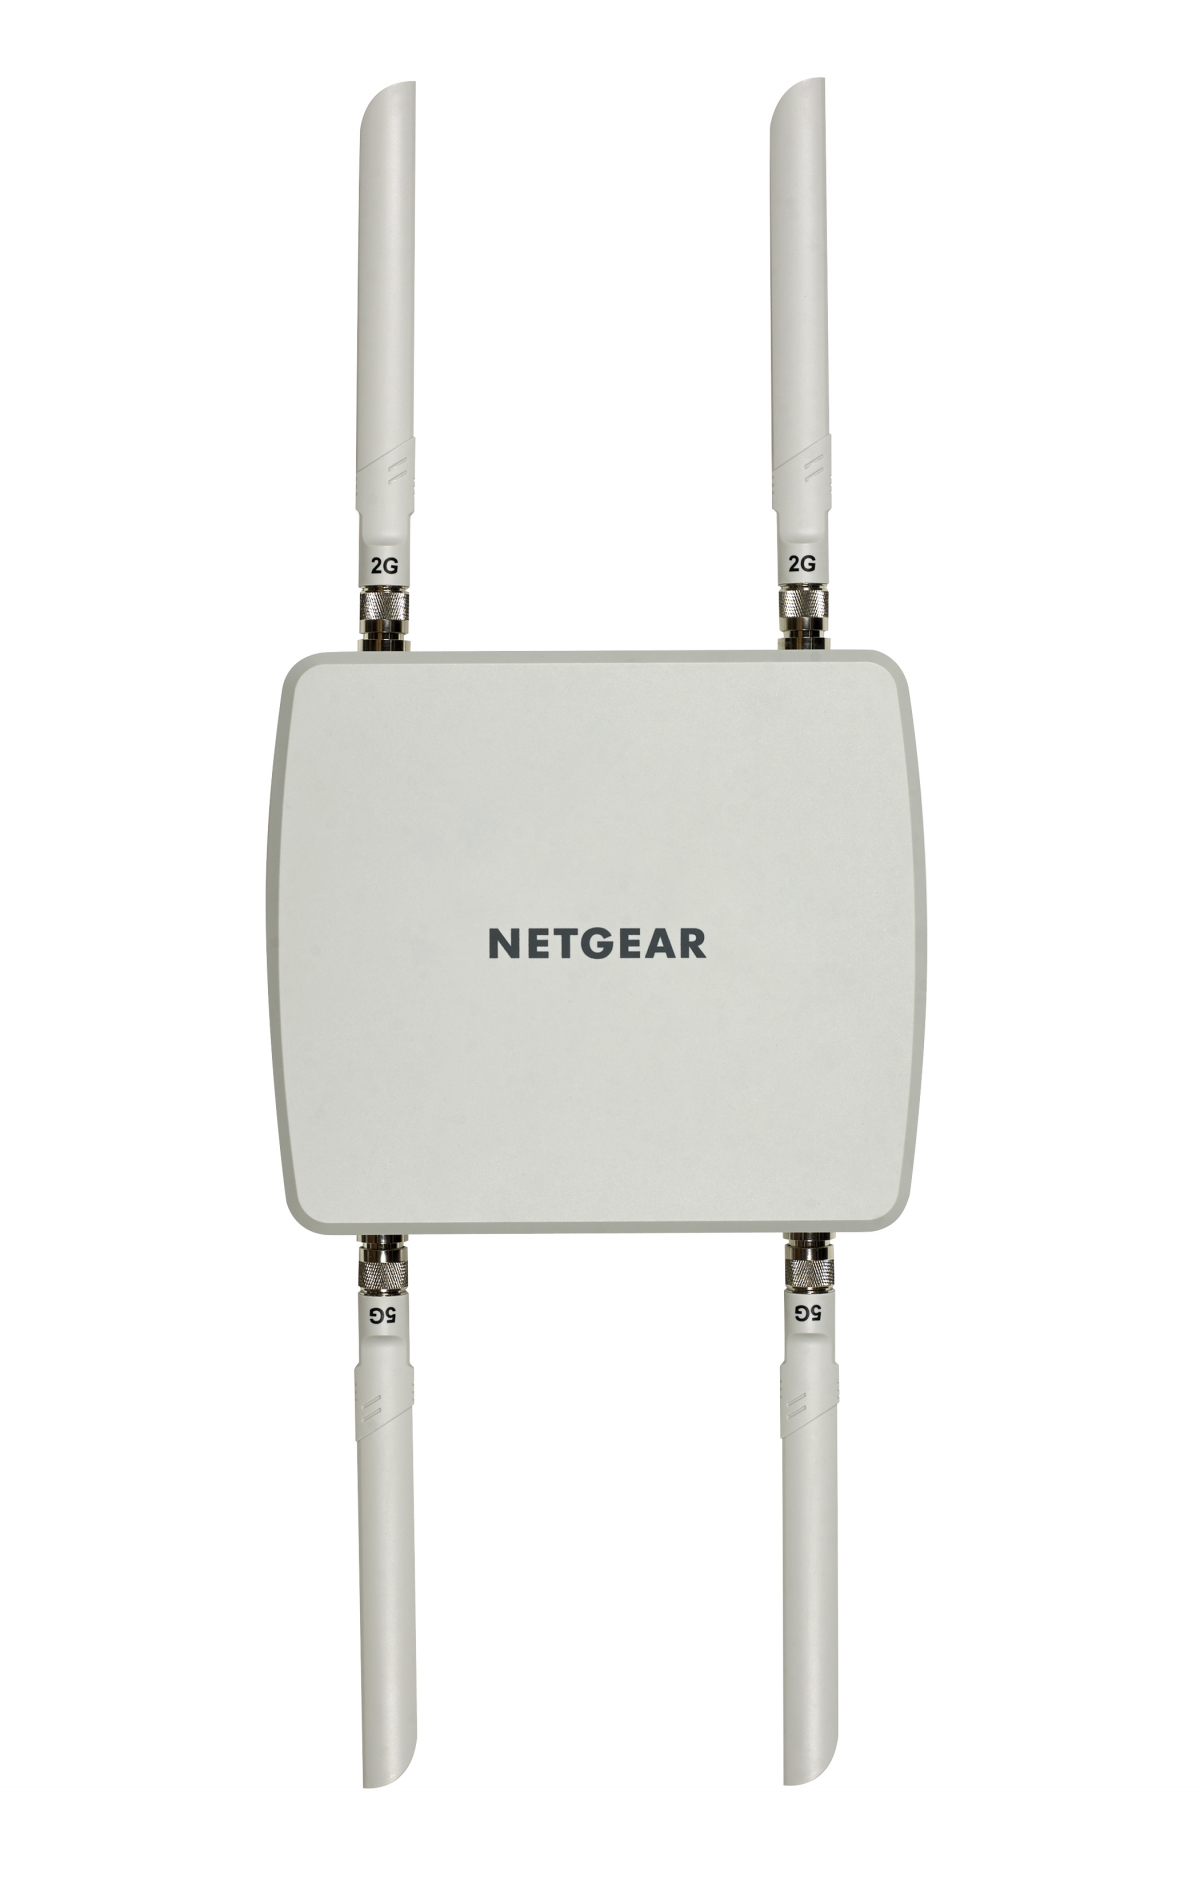 Netgear Unveils New Outdoor Wireless Access Point Wnd930